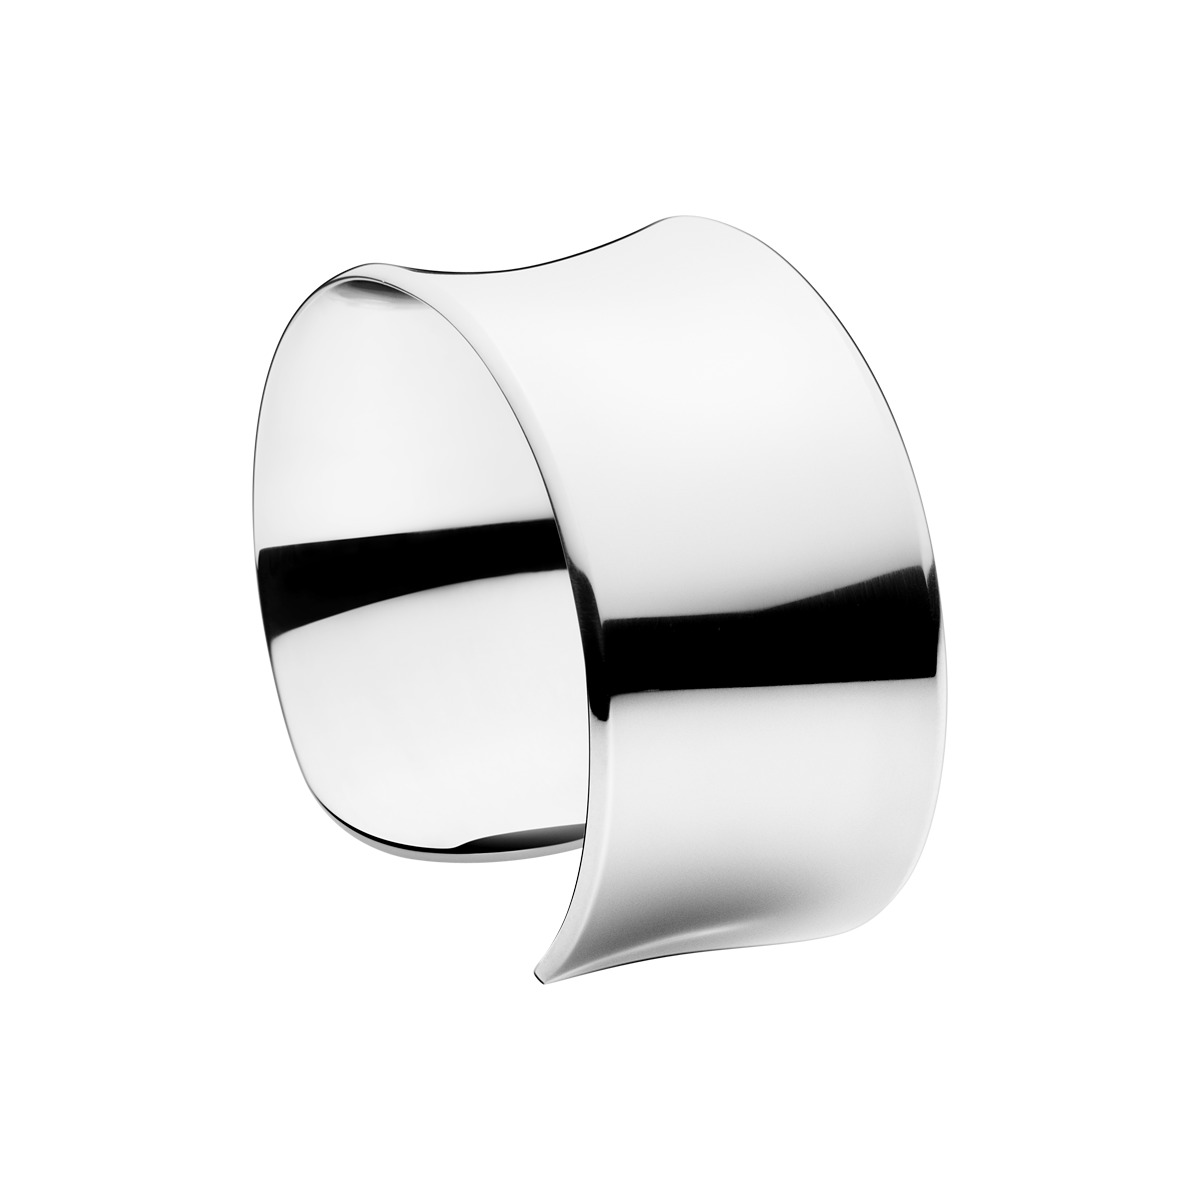 Image of   Georg Jensen SMITHY CUFFS Armring - 3531165 Armring størrelse M